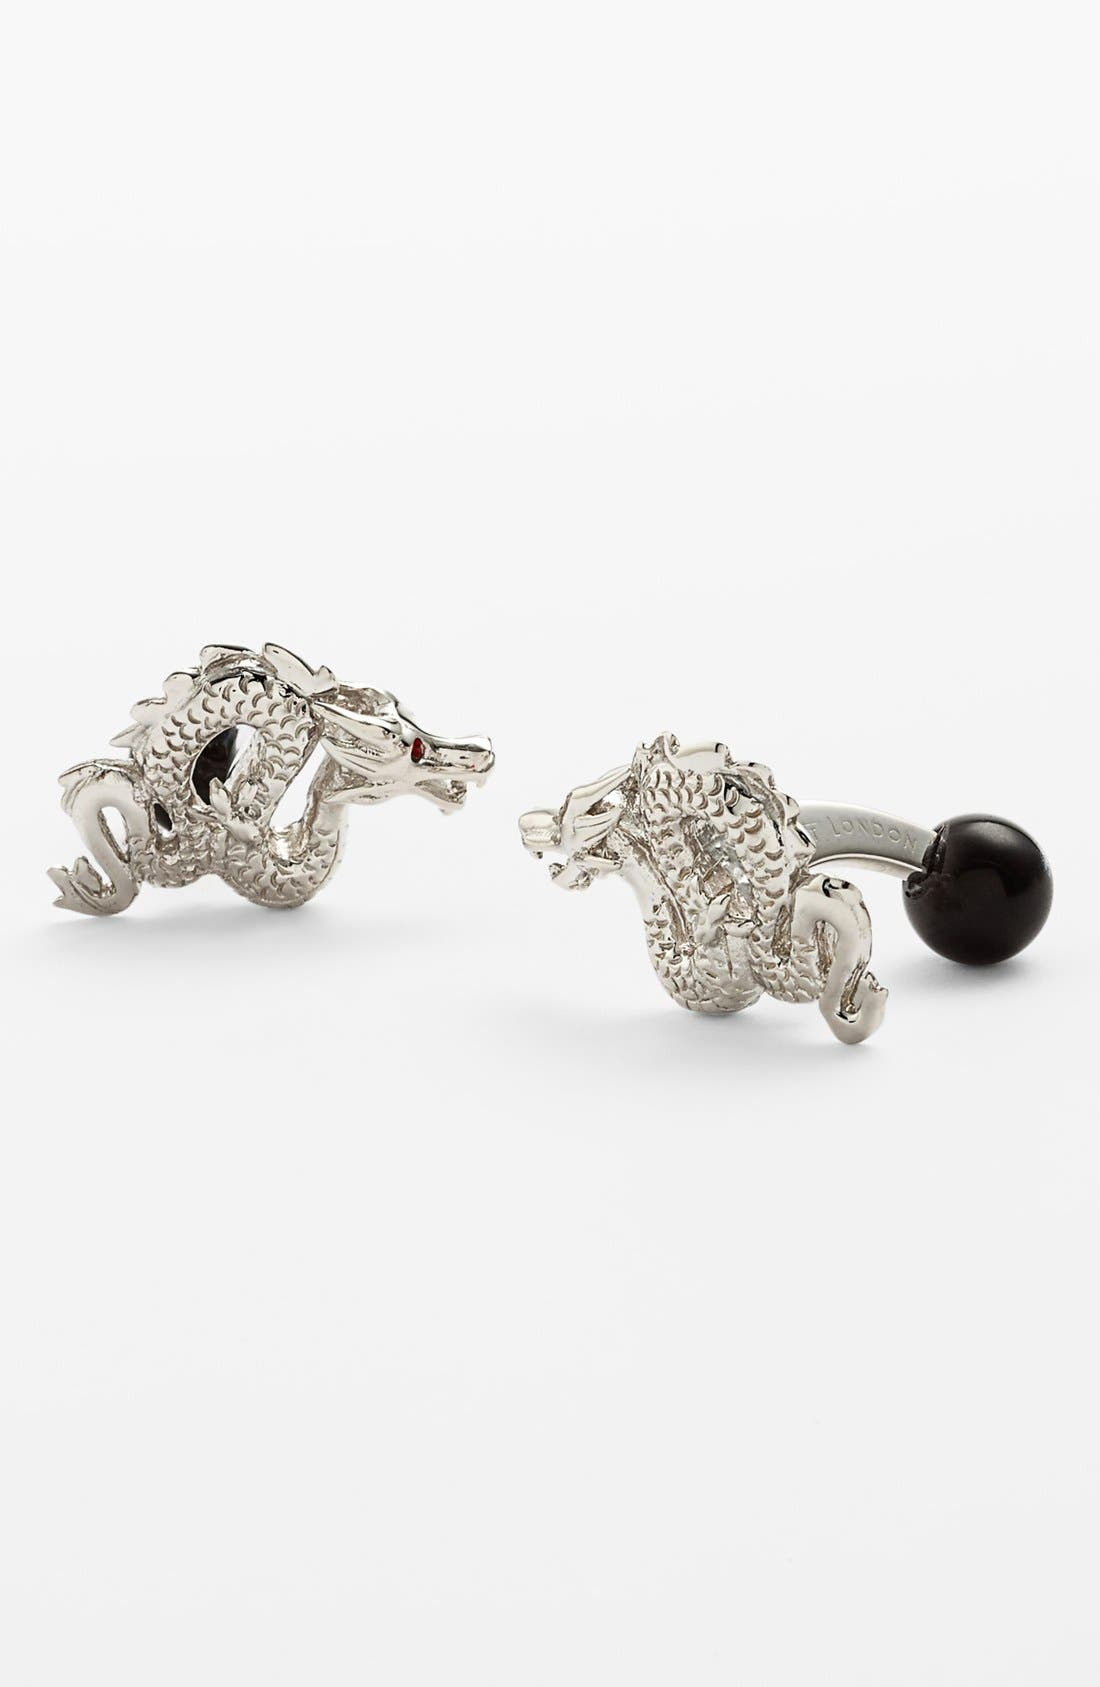 Main Image - Tateossian 'Dragon' Cuff Links